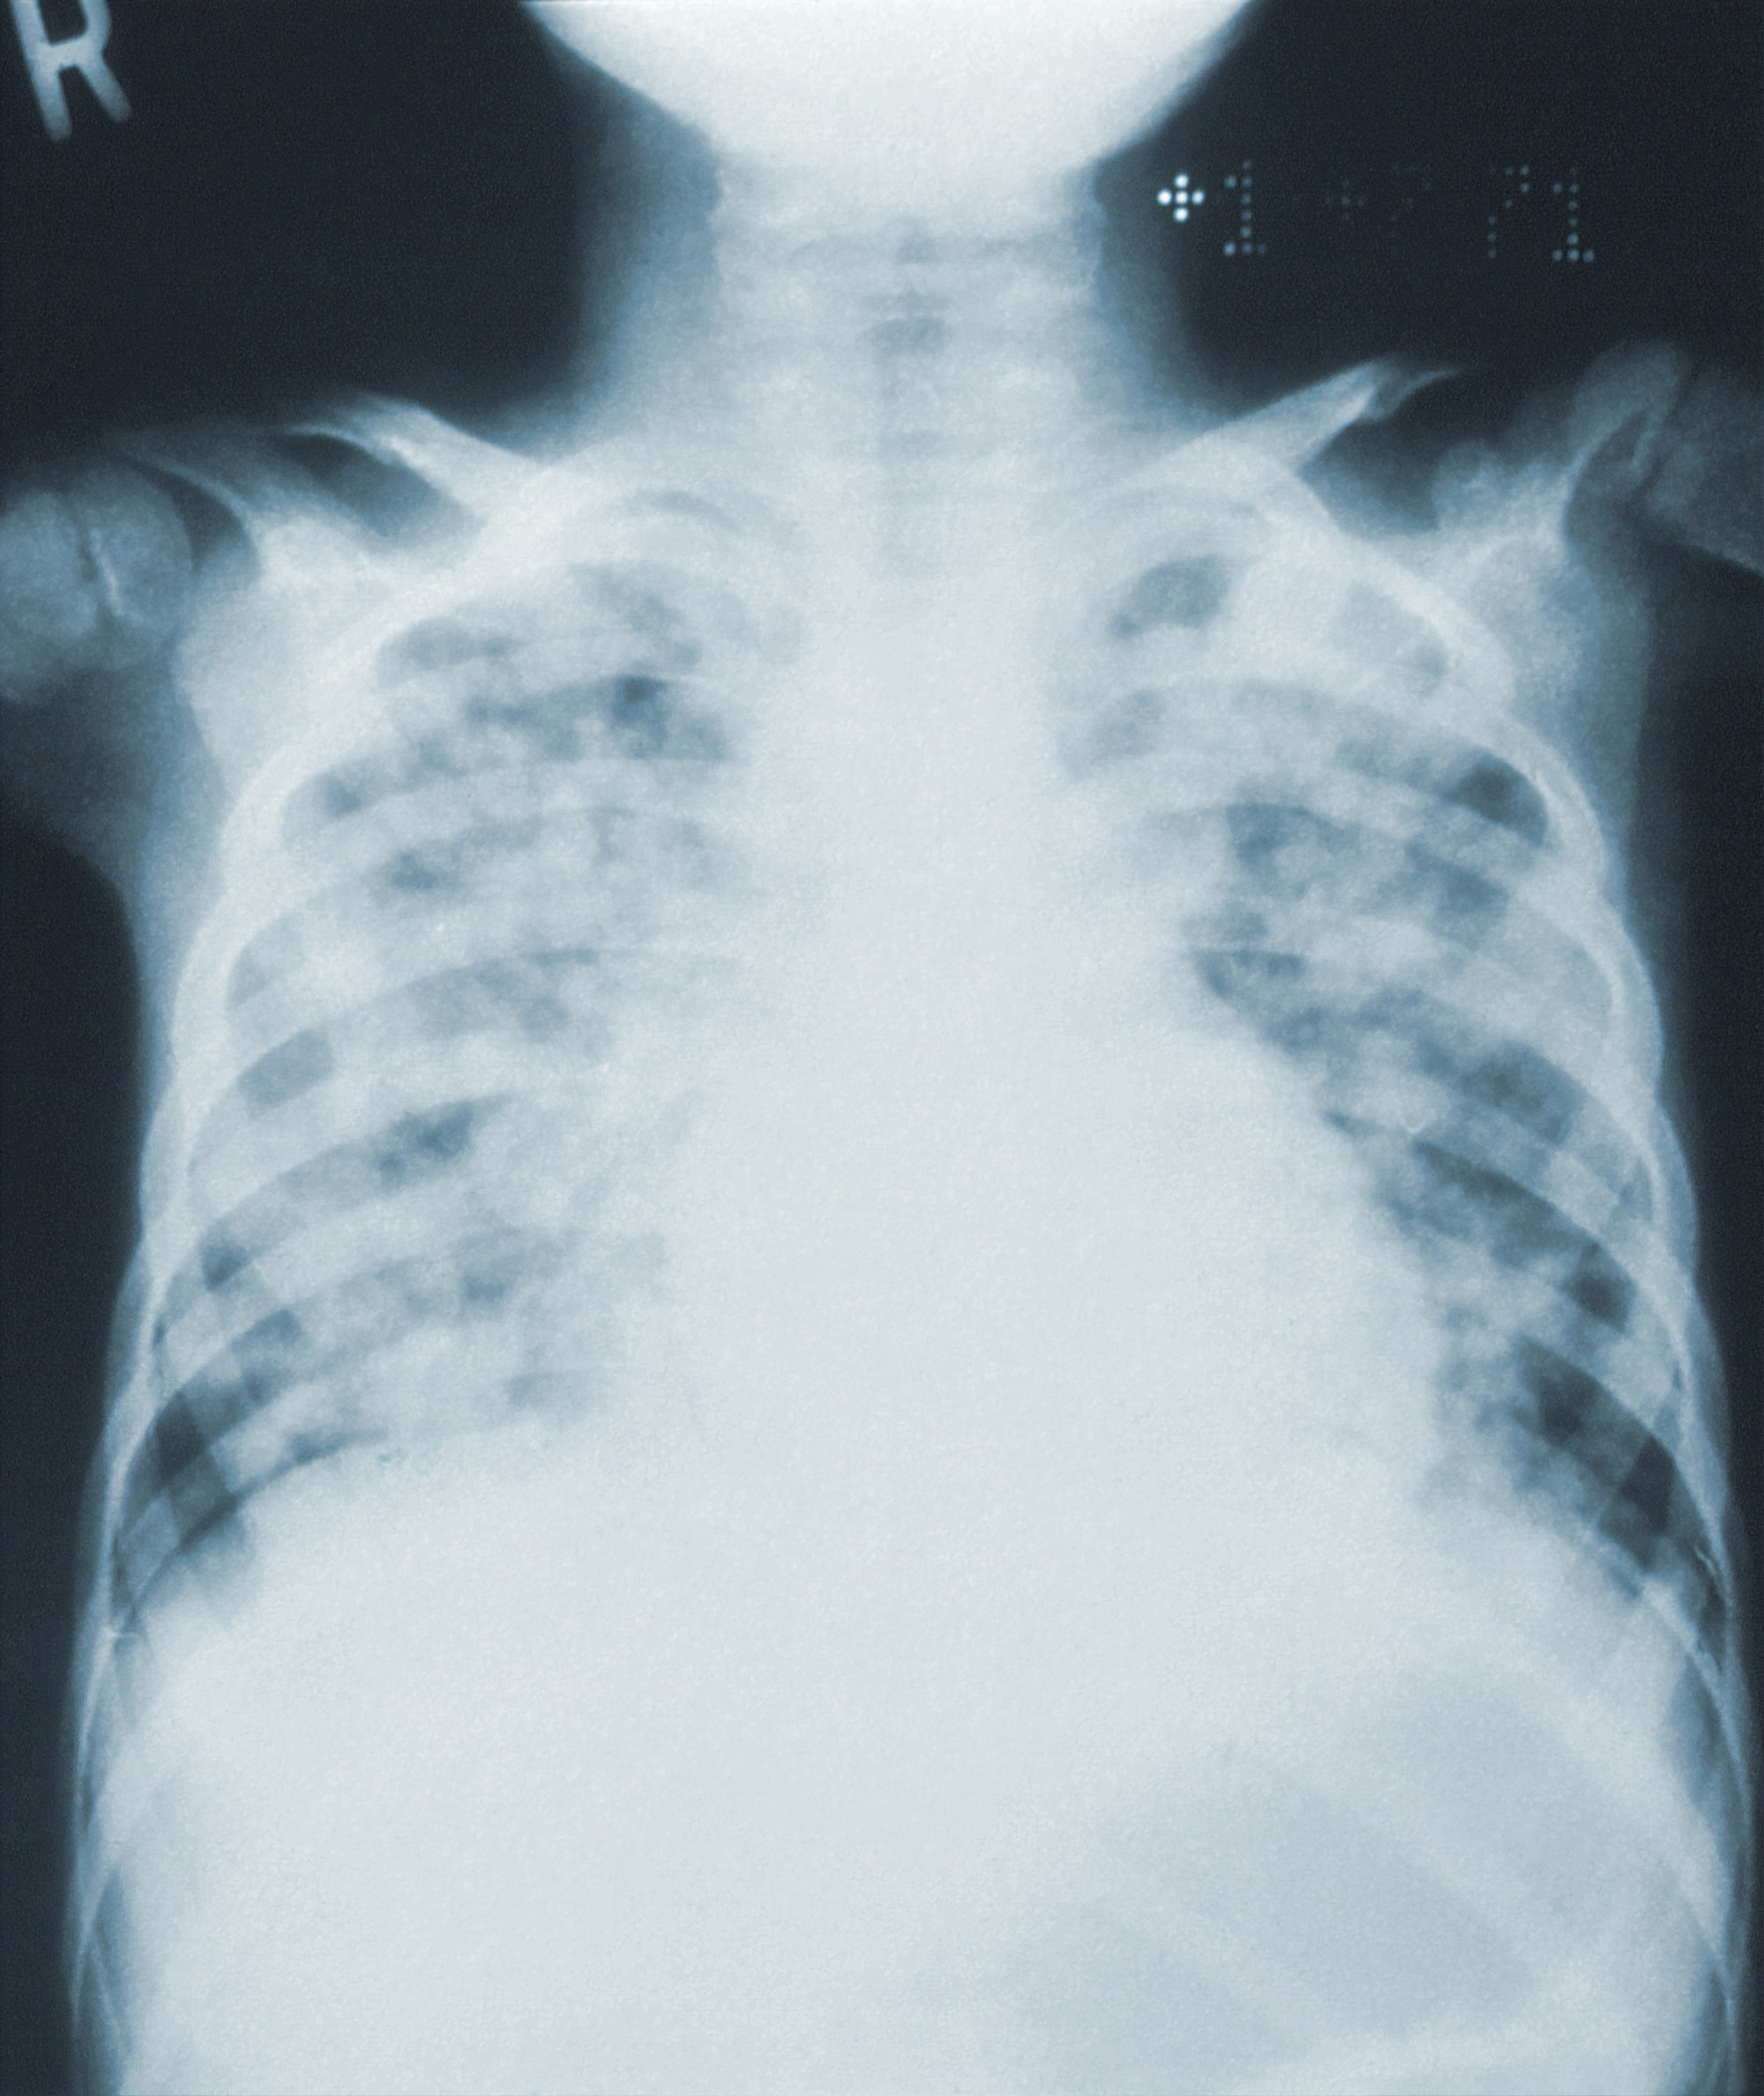 AI For Chest X-Rays Made Easy!